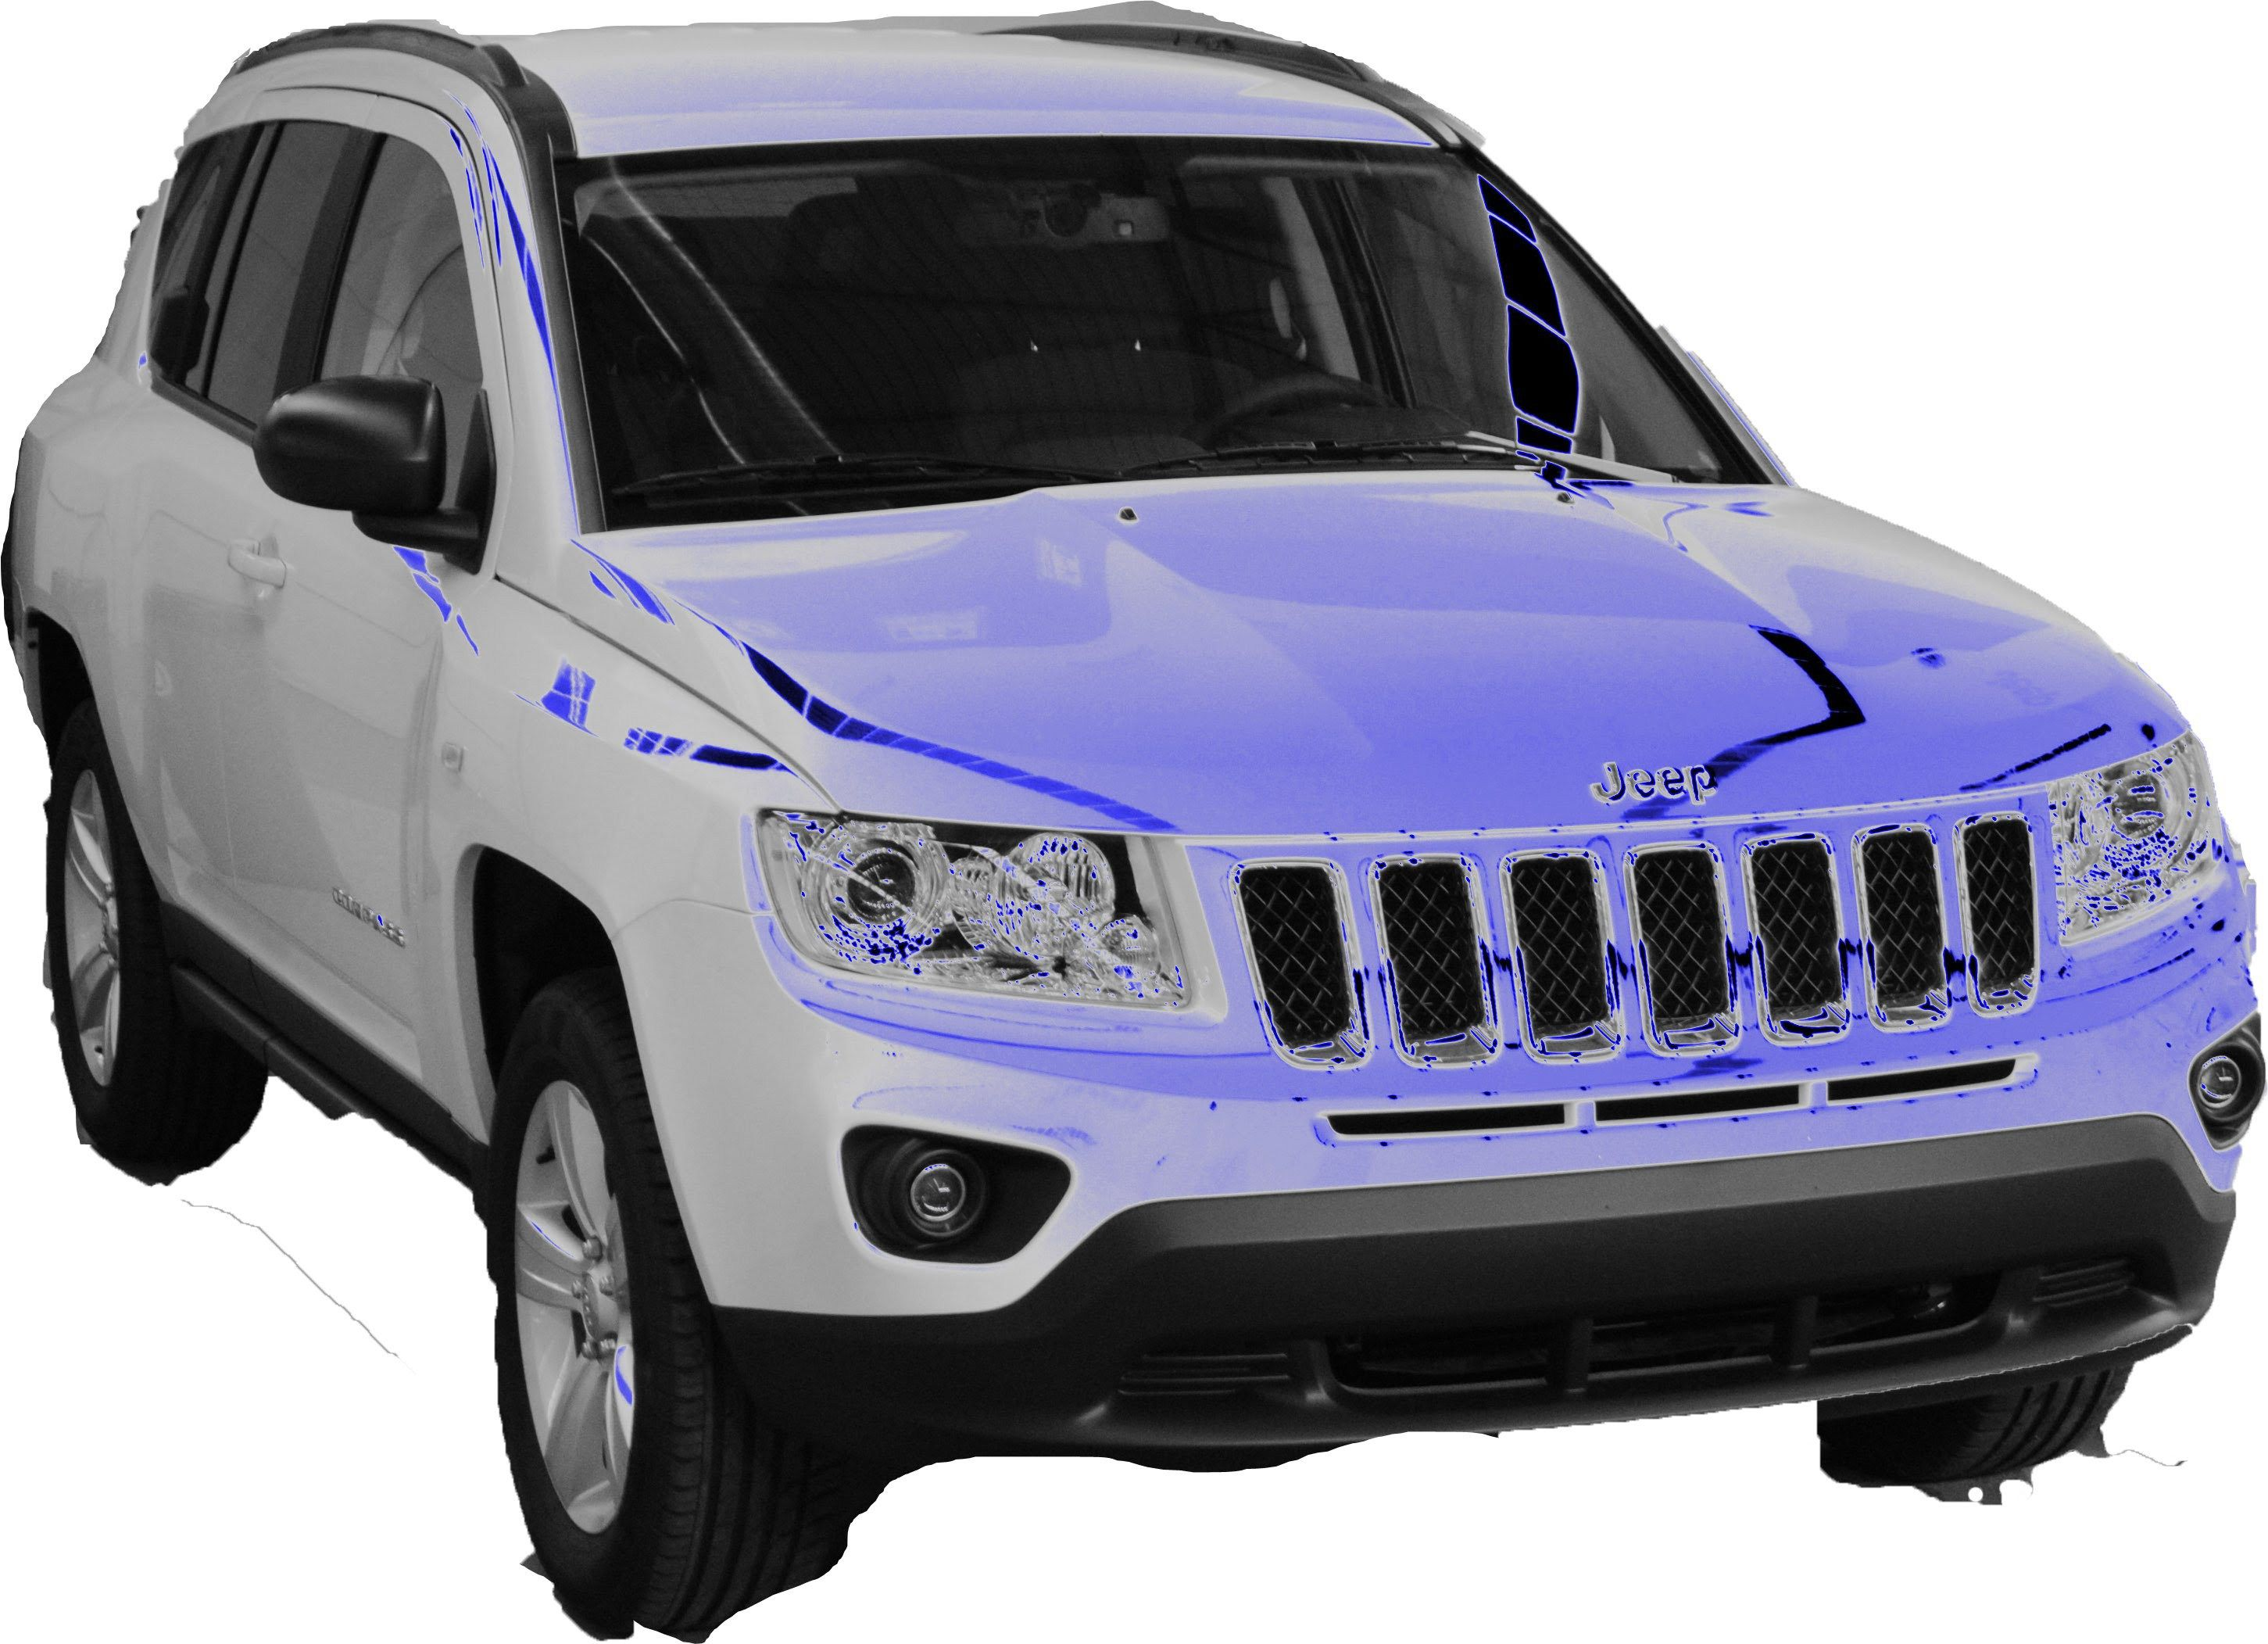 Discover About DODGE Caliber and Dodge Caliber Jeep Compass – Jeep Compass  Code P2017 – Dodge